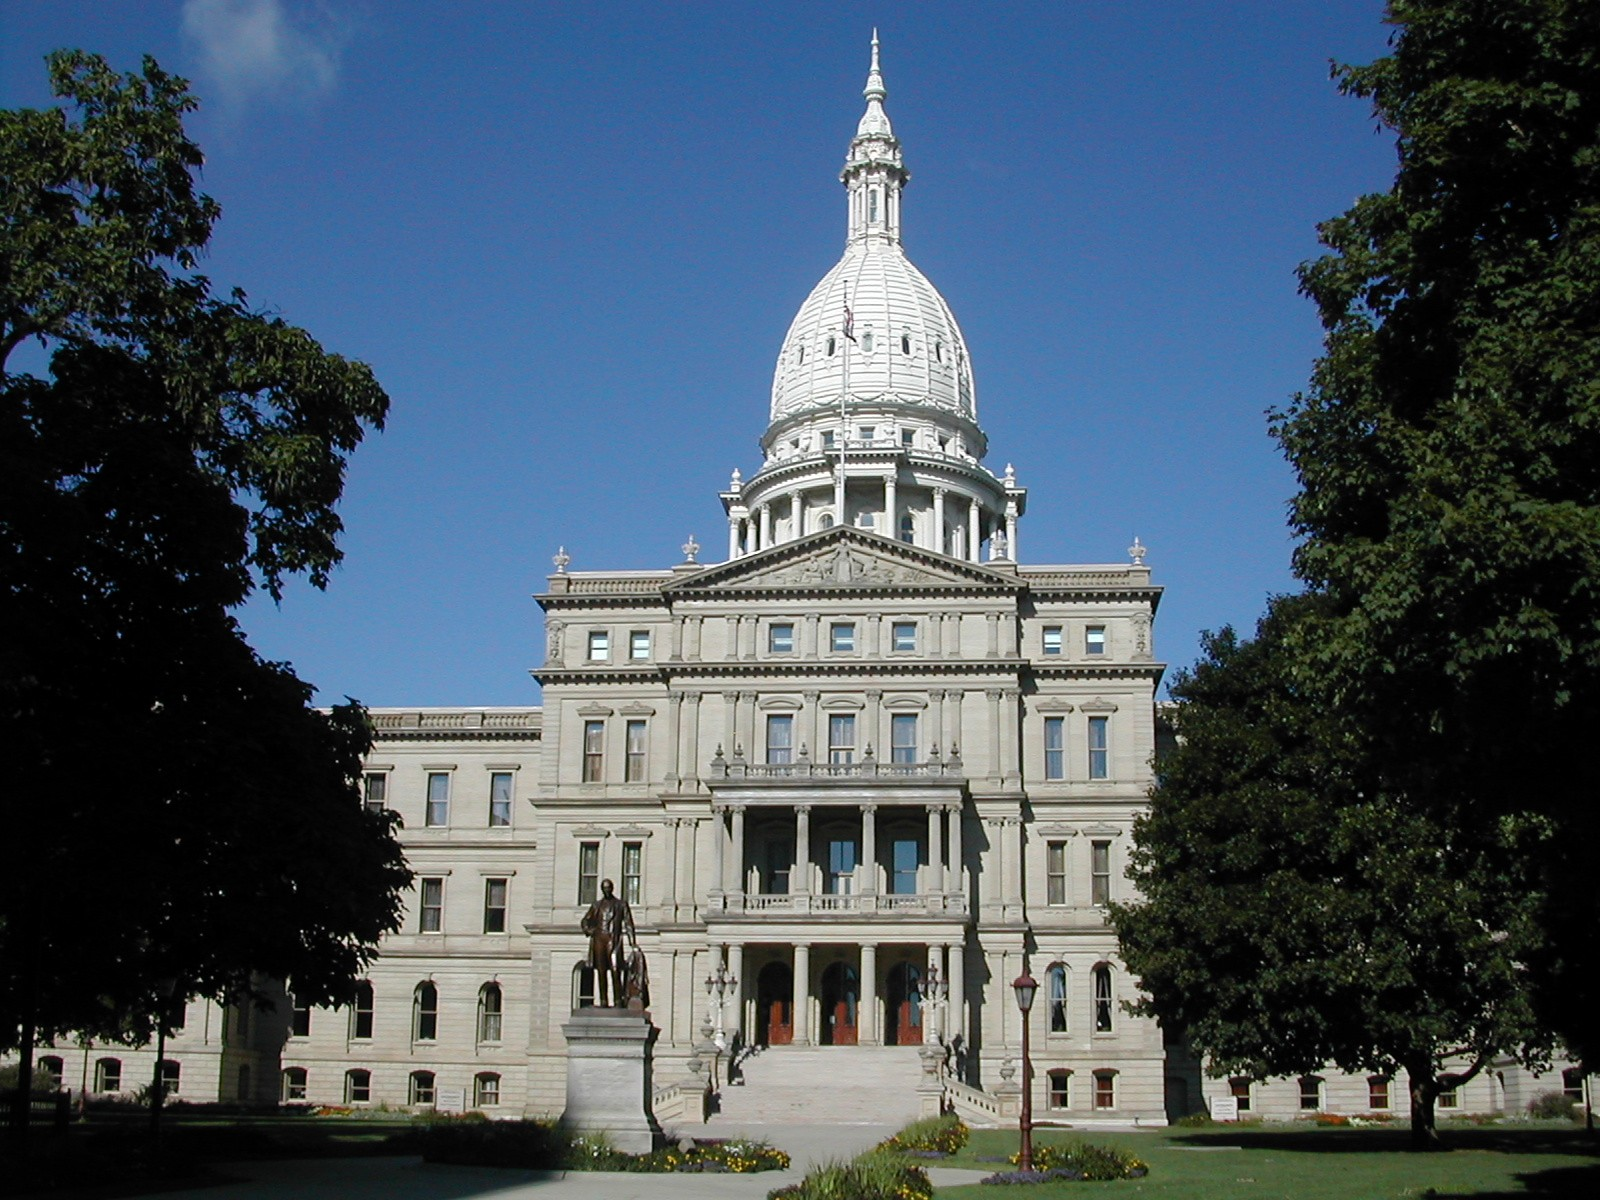 File:Michigan state capitol.jpg - Wikimedia Commons